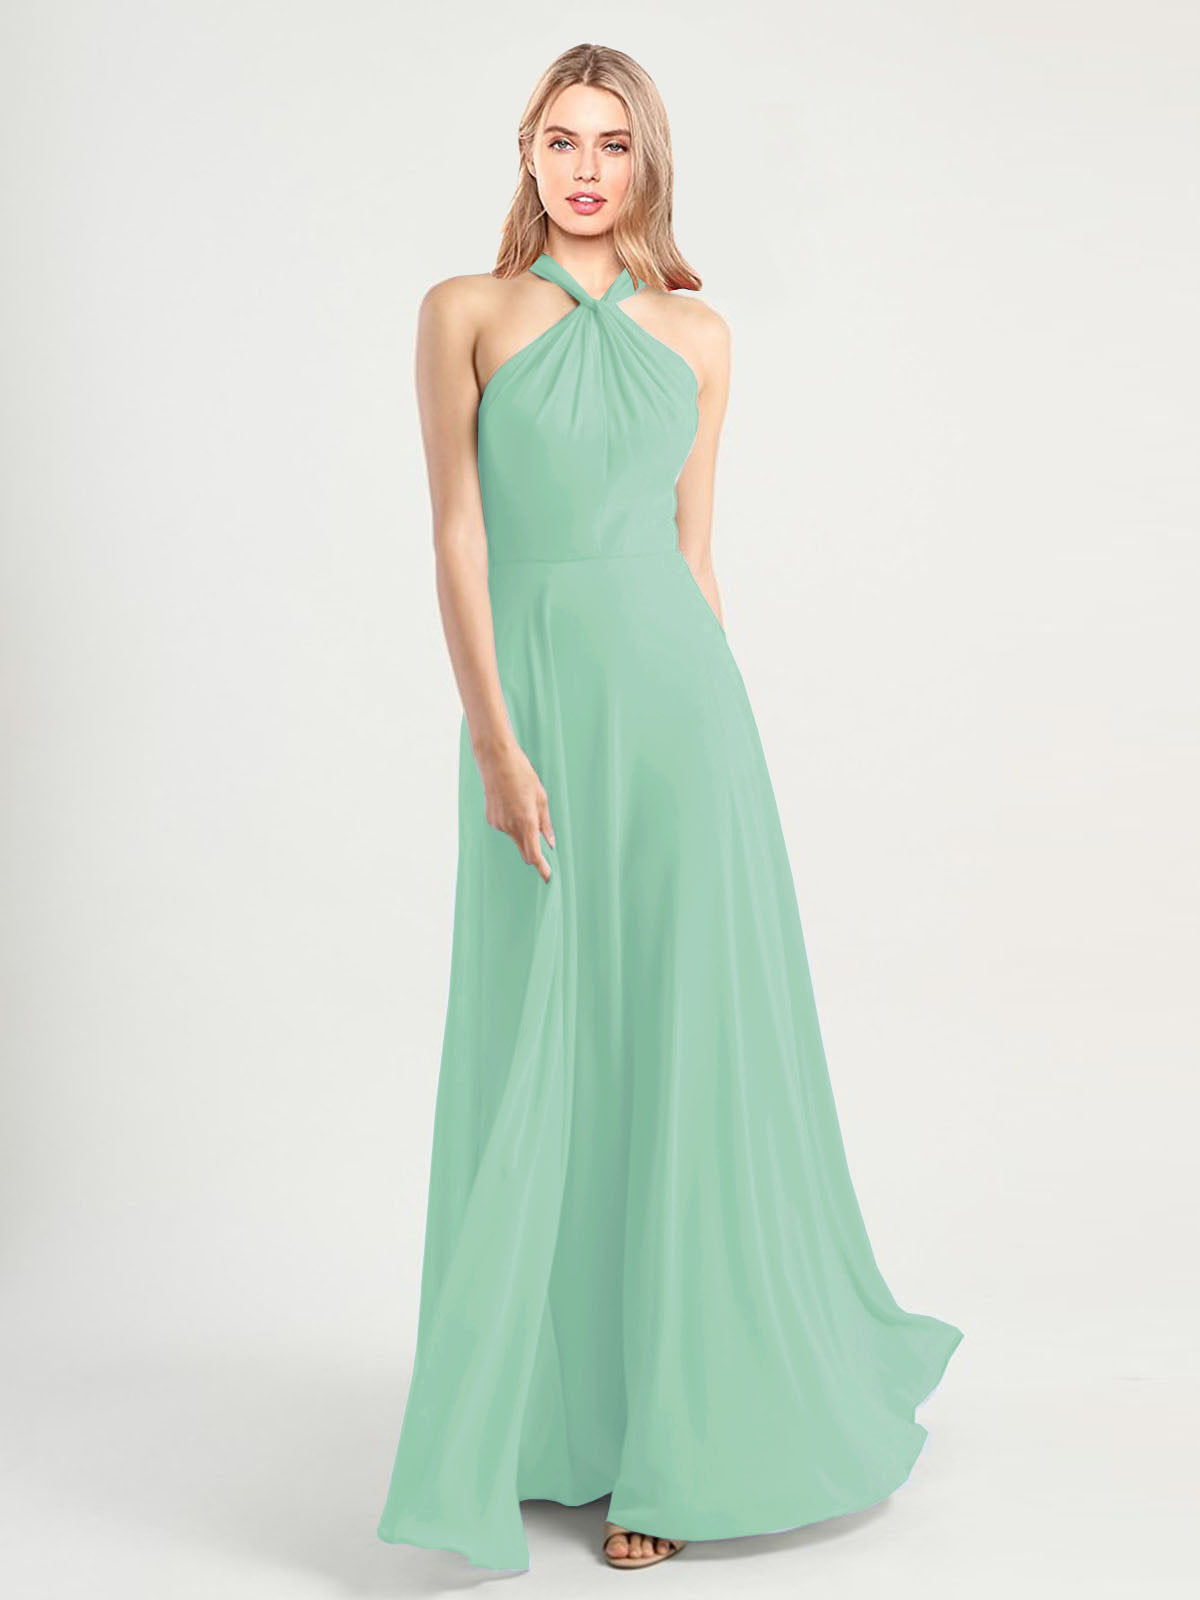 Long A-Line High Neck, Halter Sleeveless Mint Green Chiffon Bridesmaid Dress Yoli